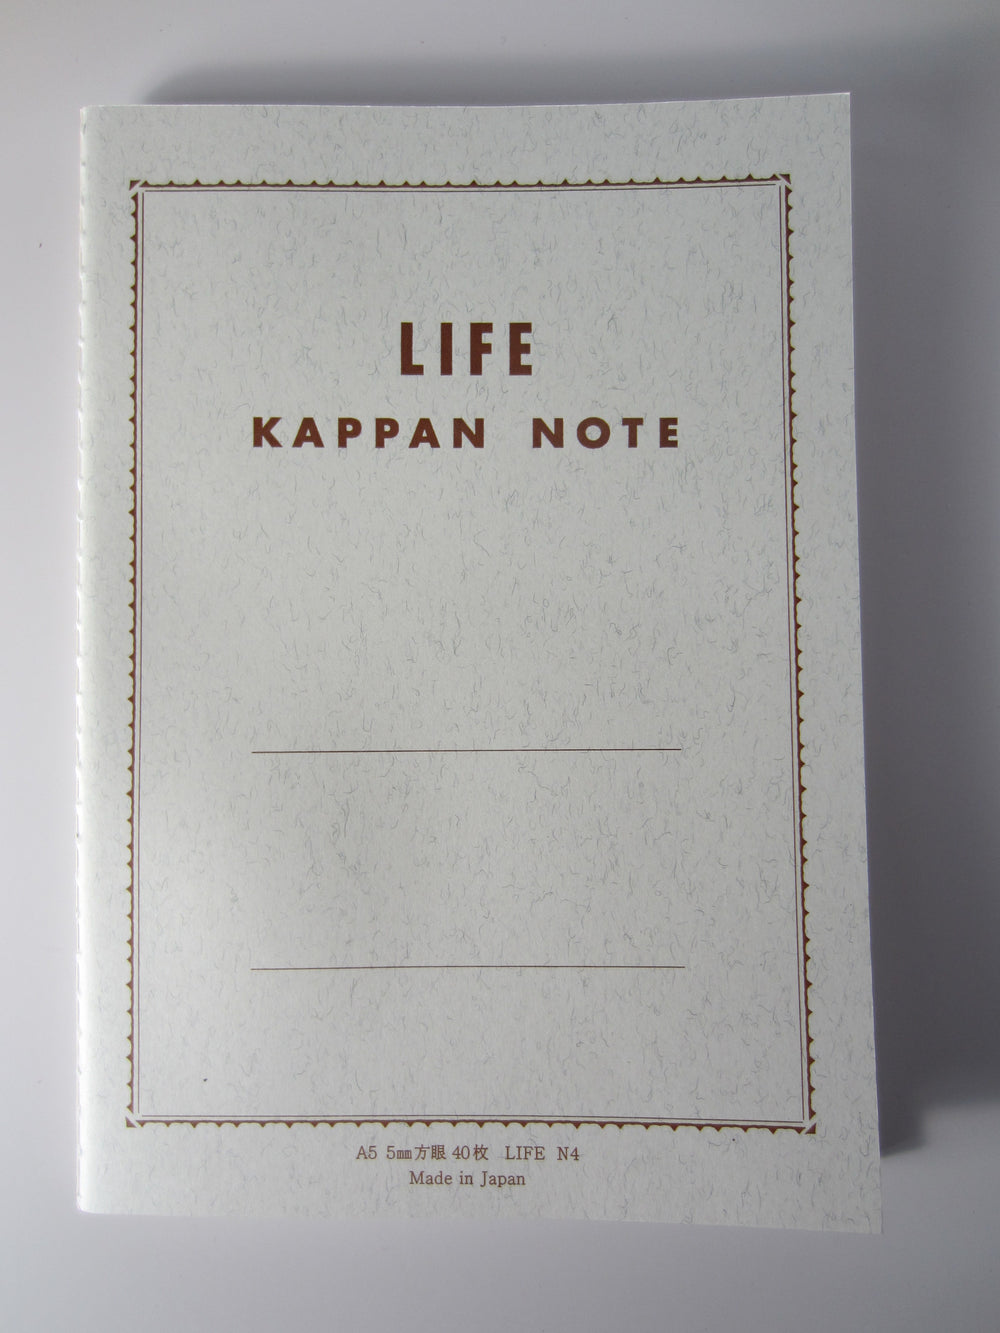 Life Stationery Kappan Note A5